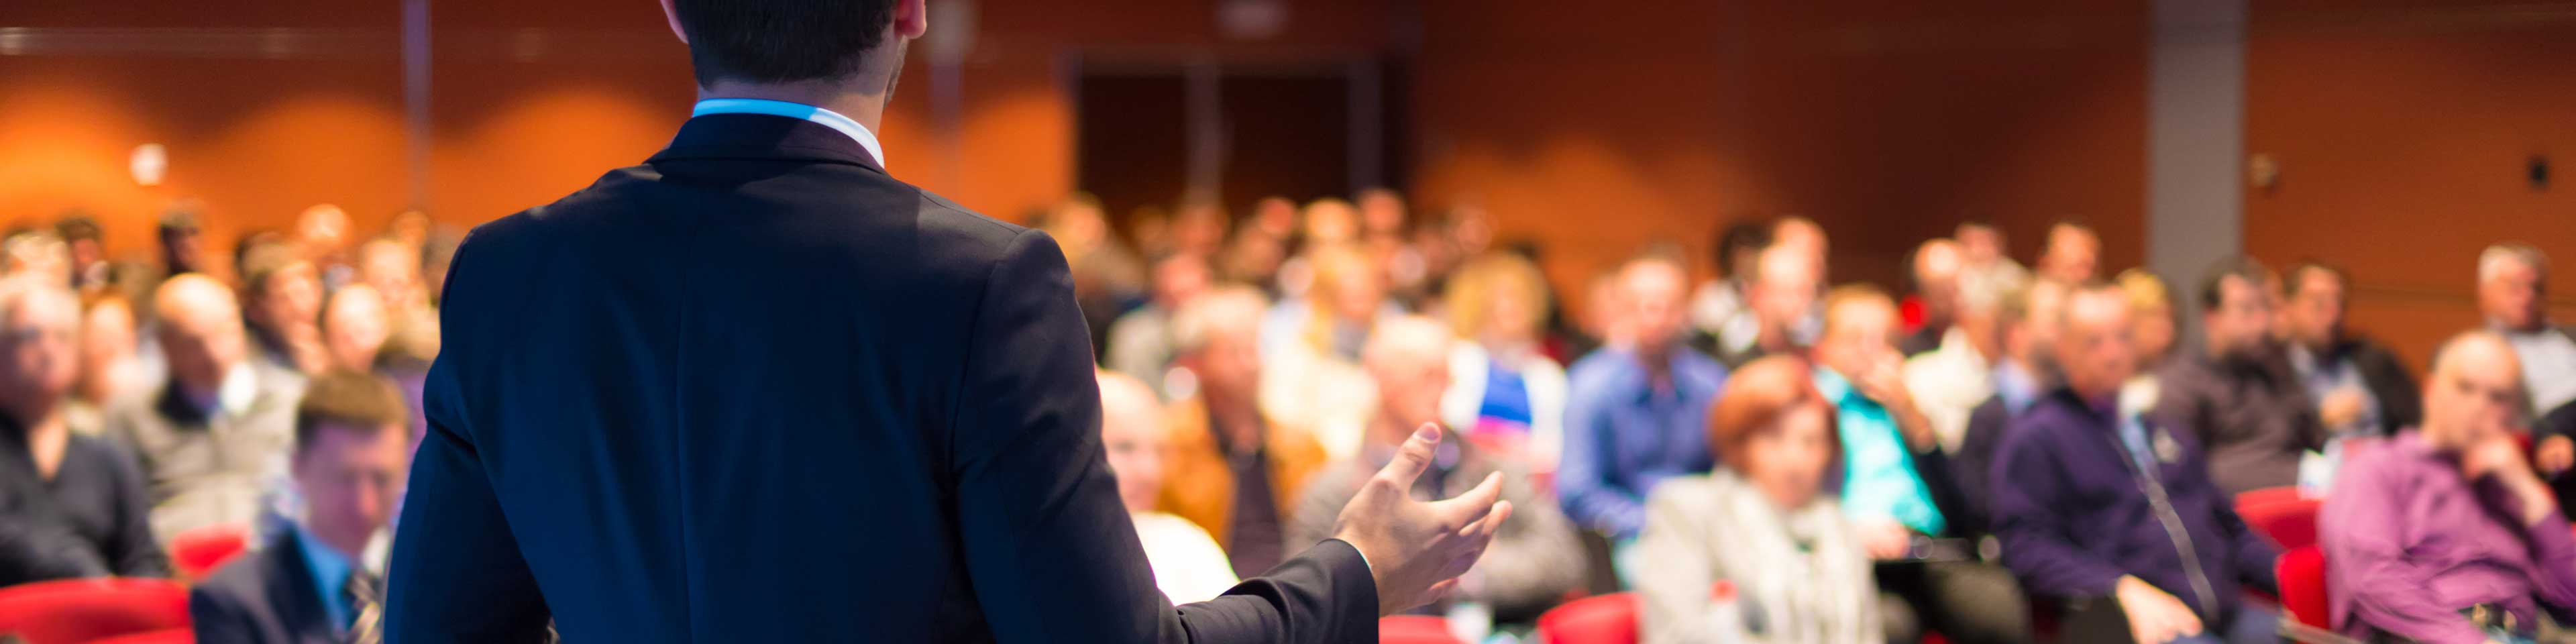 Wolters Kluwer announces three dynamic keynote speakers for its annual CCH Connections User Conference